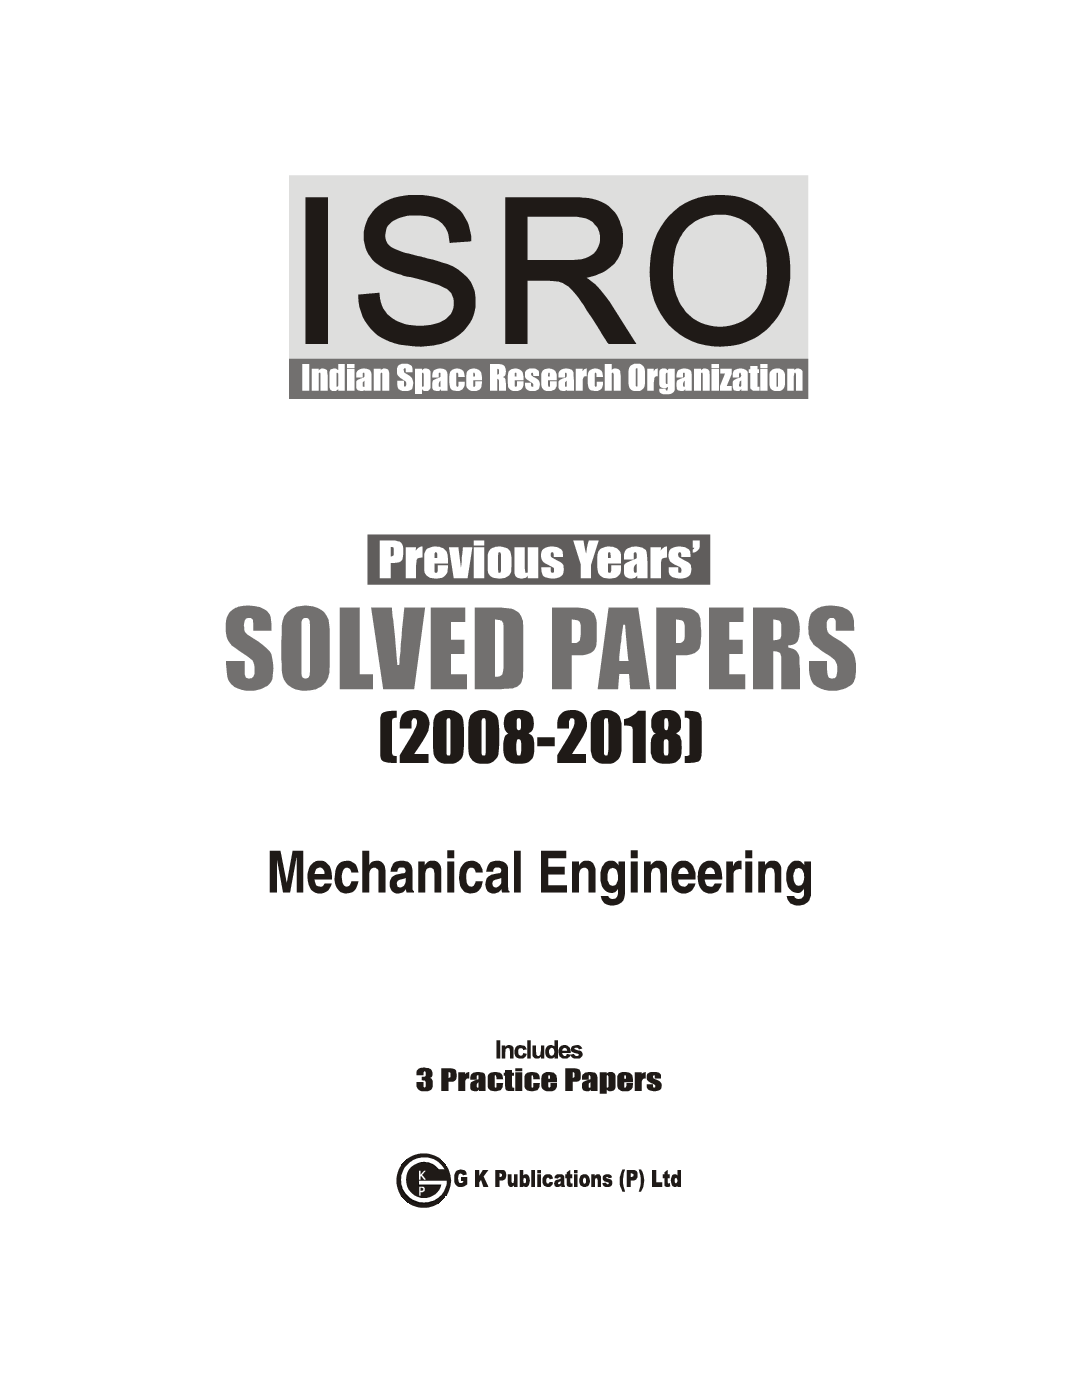 ISRO 2019 Mechanical Engineering Previous Years Solved Papers (2008-2018) - Page 2